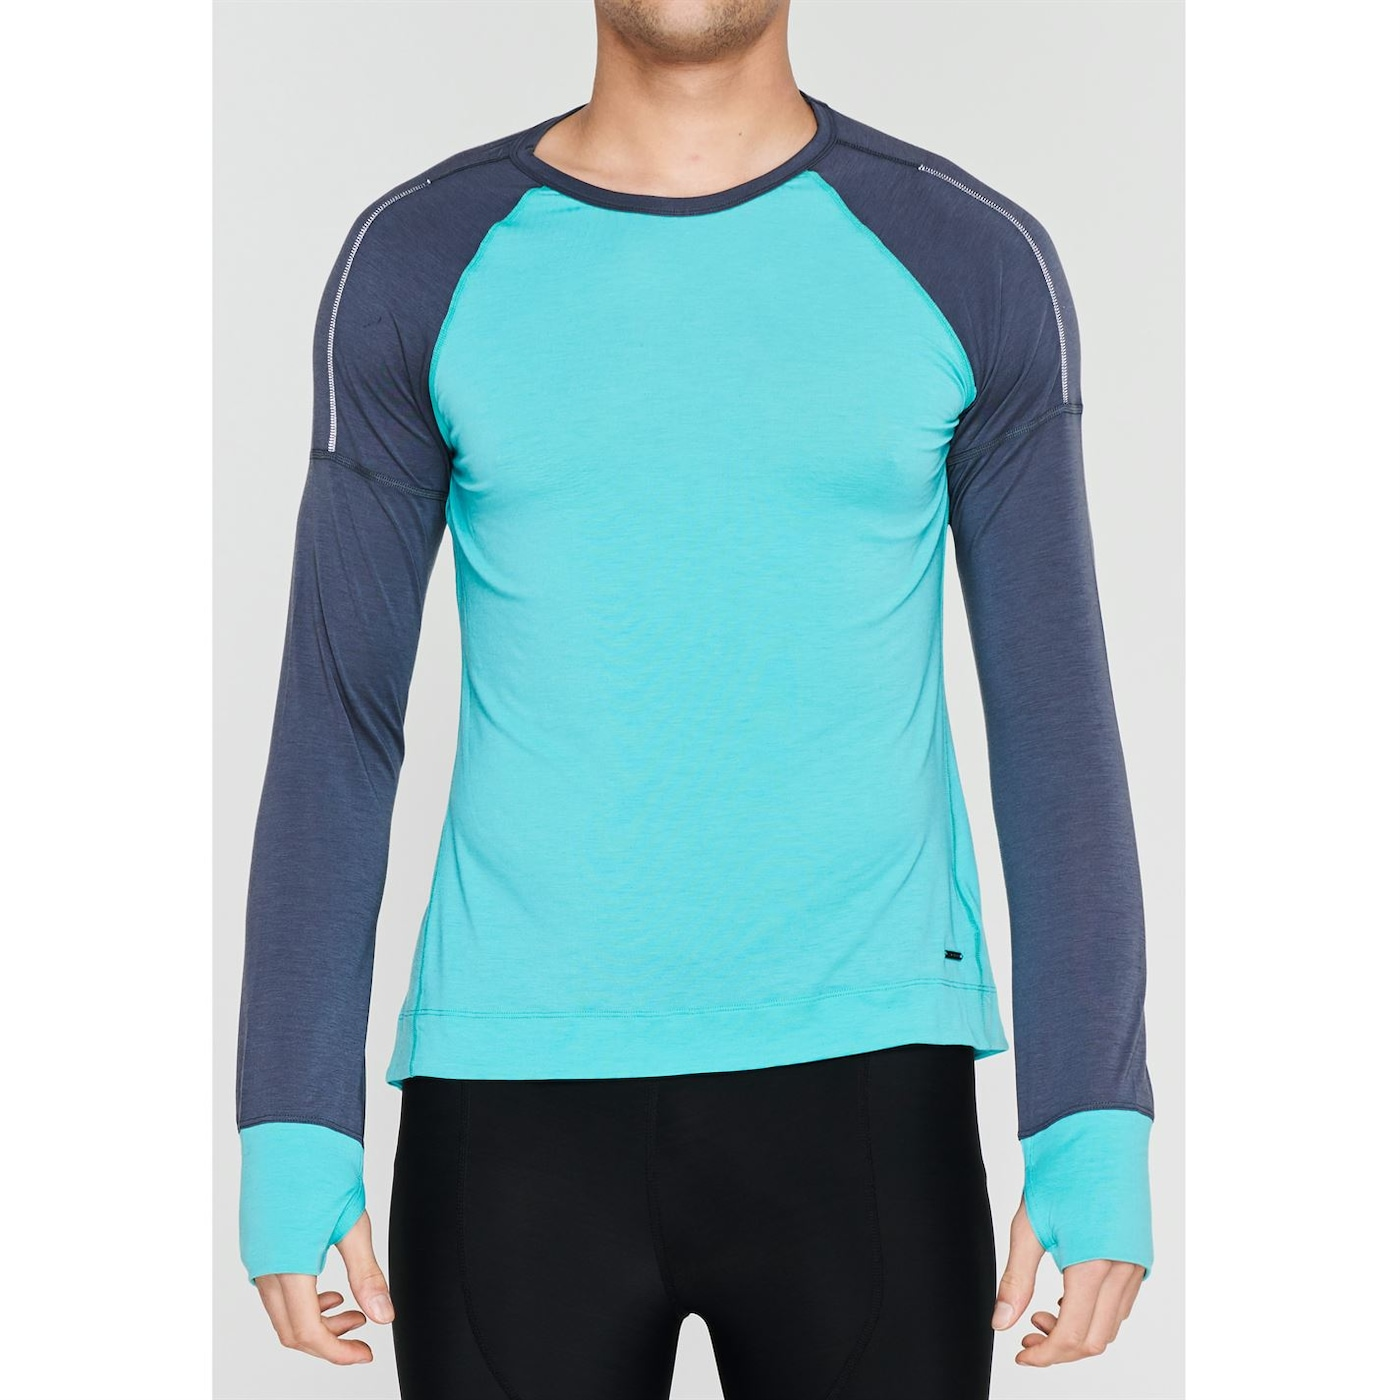 Sugoi RS Zero Long Sleeve Jersey Mens